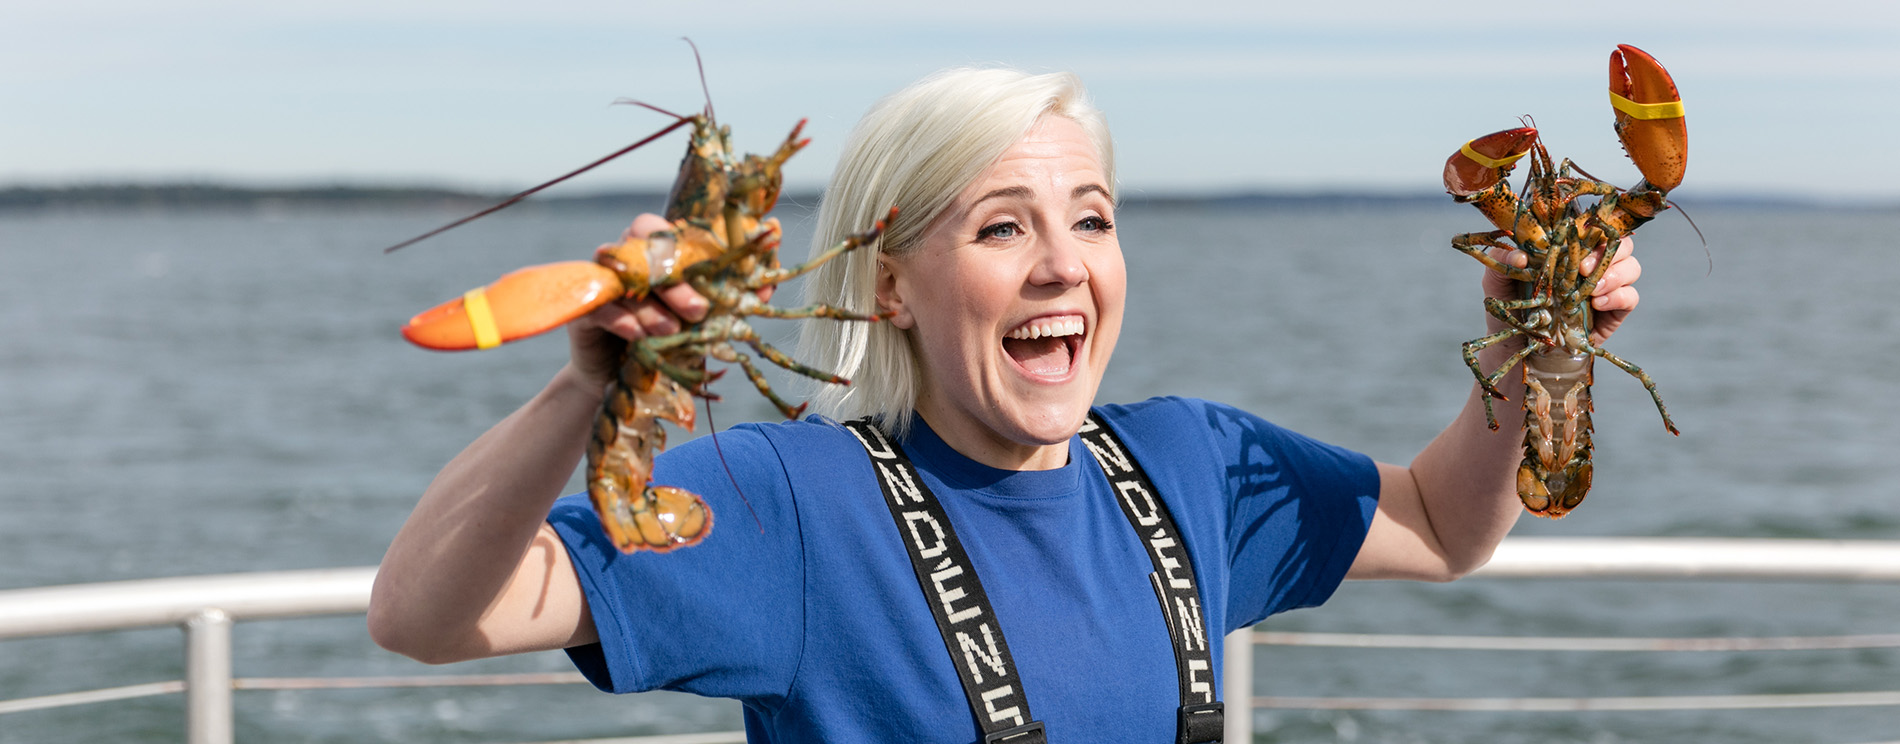 Hannah Hart Hits The Road For A Tasty Cross-Country Trip In I Hart Food